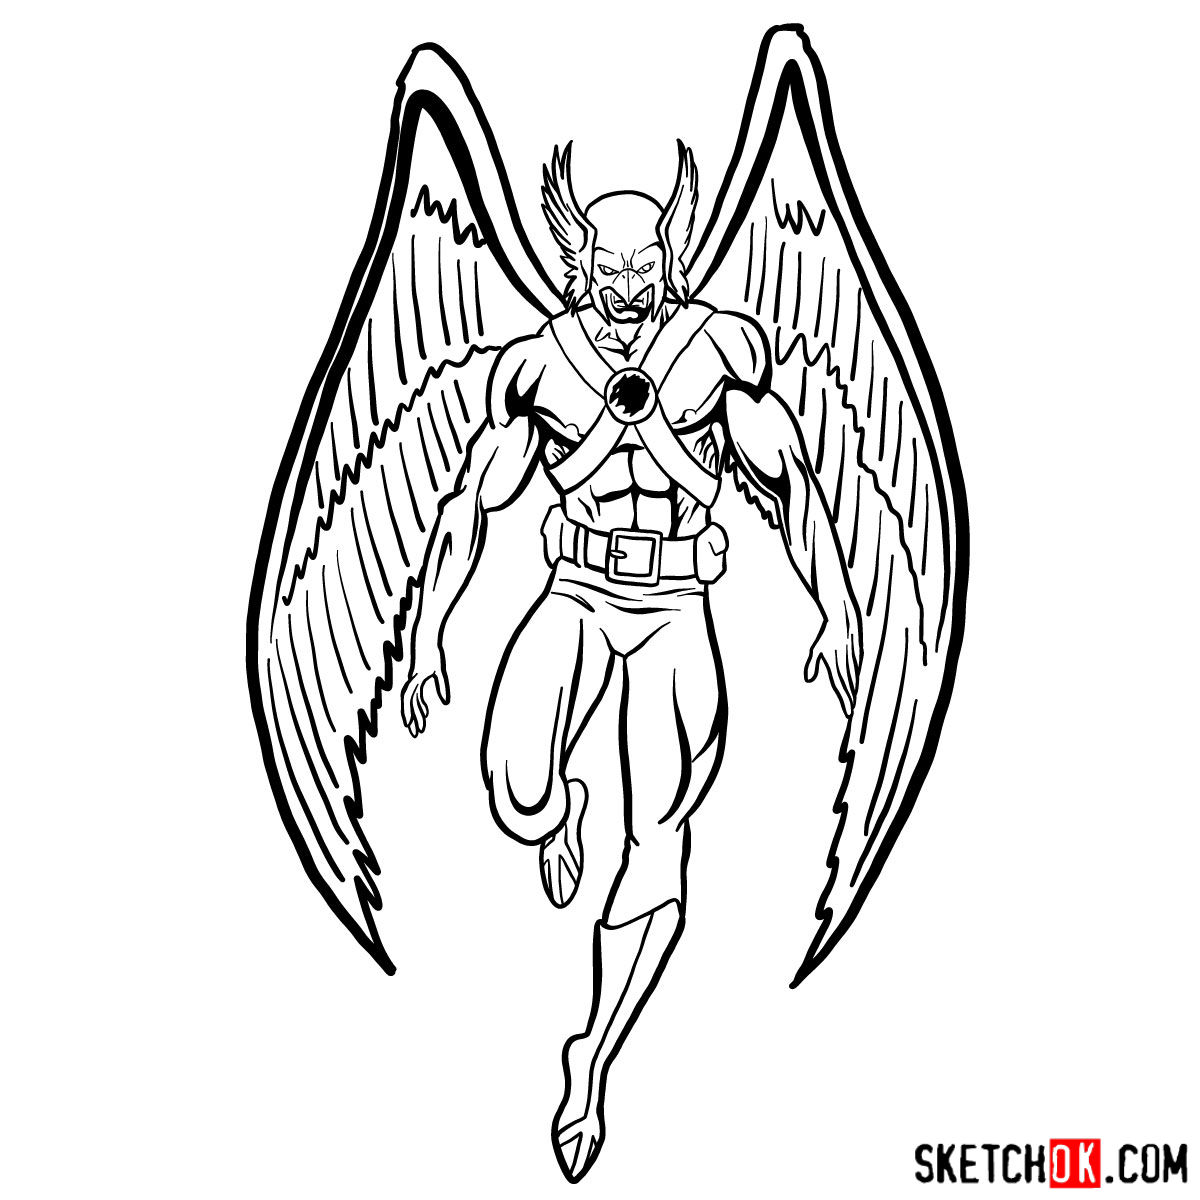 How to draw Hawkman from DC Comics - step 16